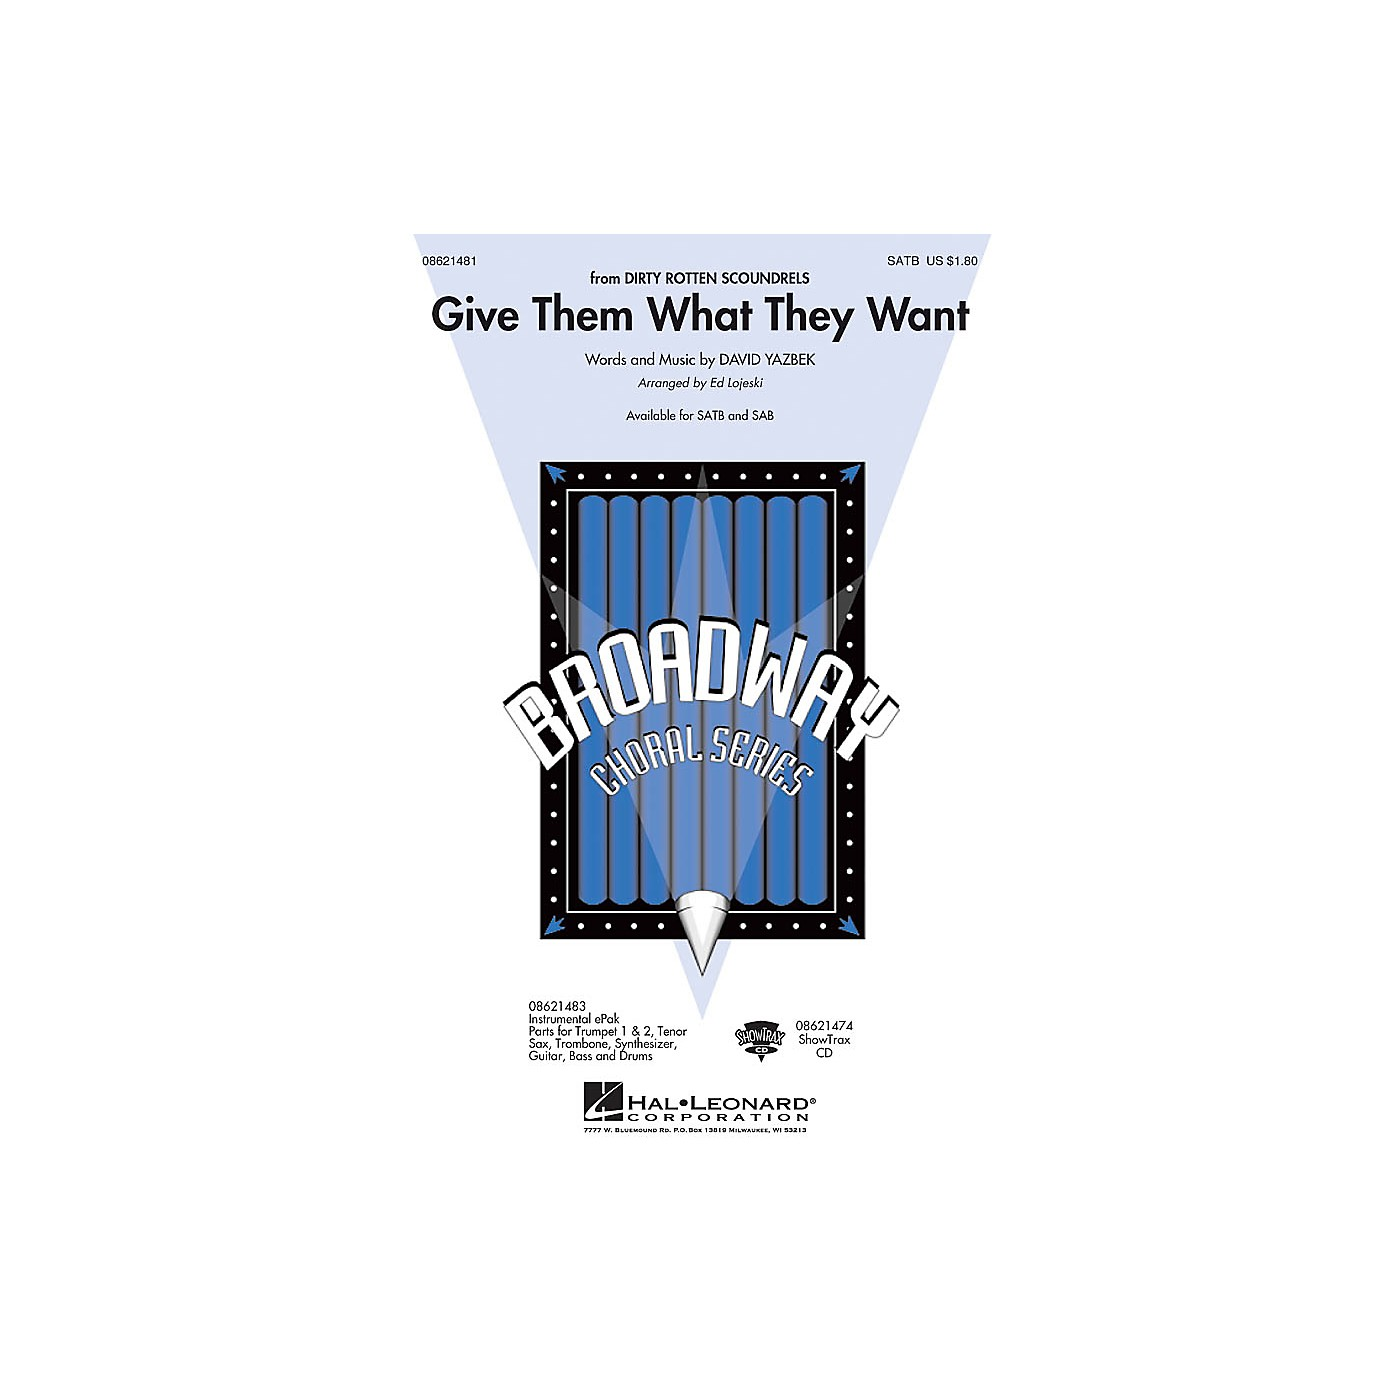 Hal Leonard Give Them What They Want (from Dirty Rotten Scoundrels) SATB arranged by Ed Lojeski thumbnail